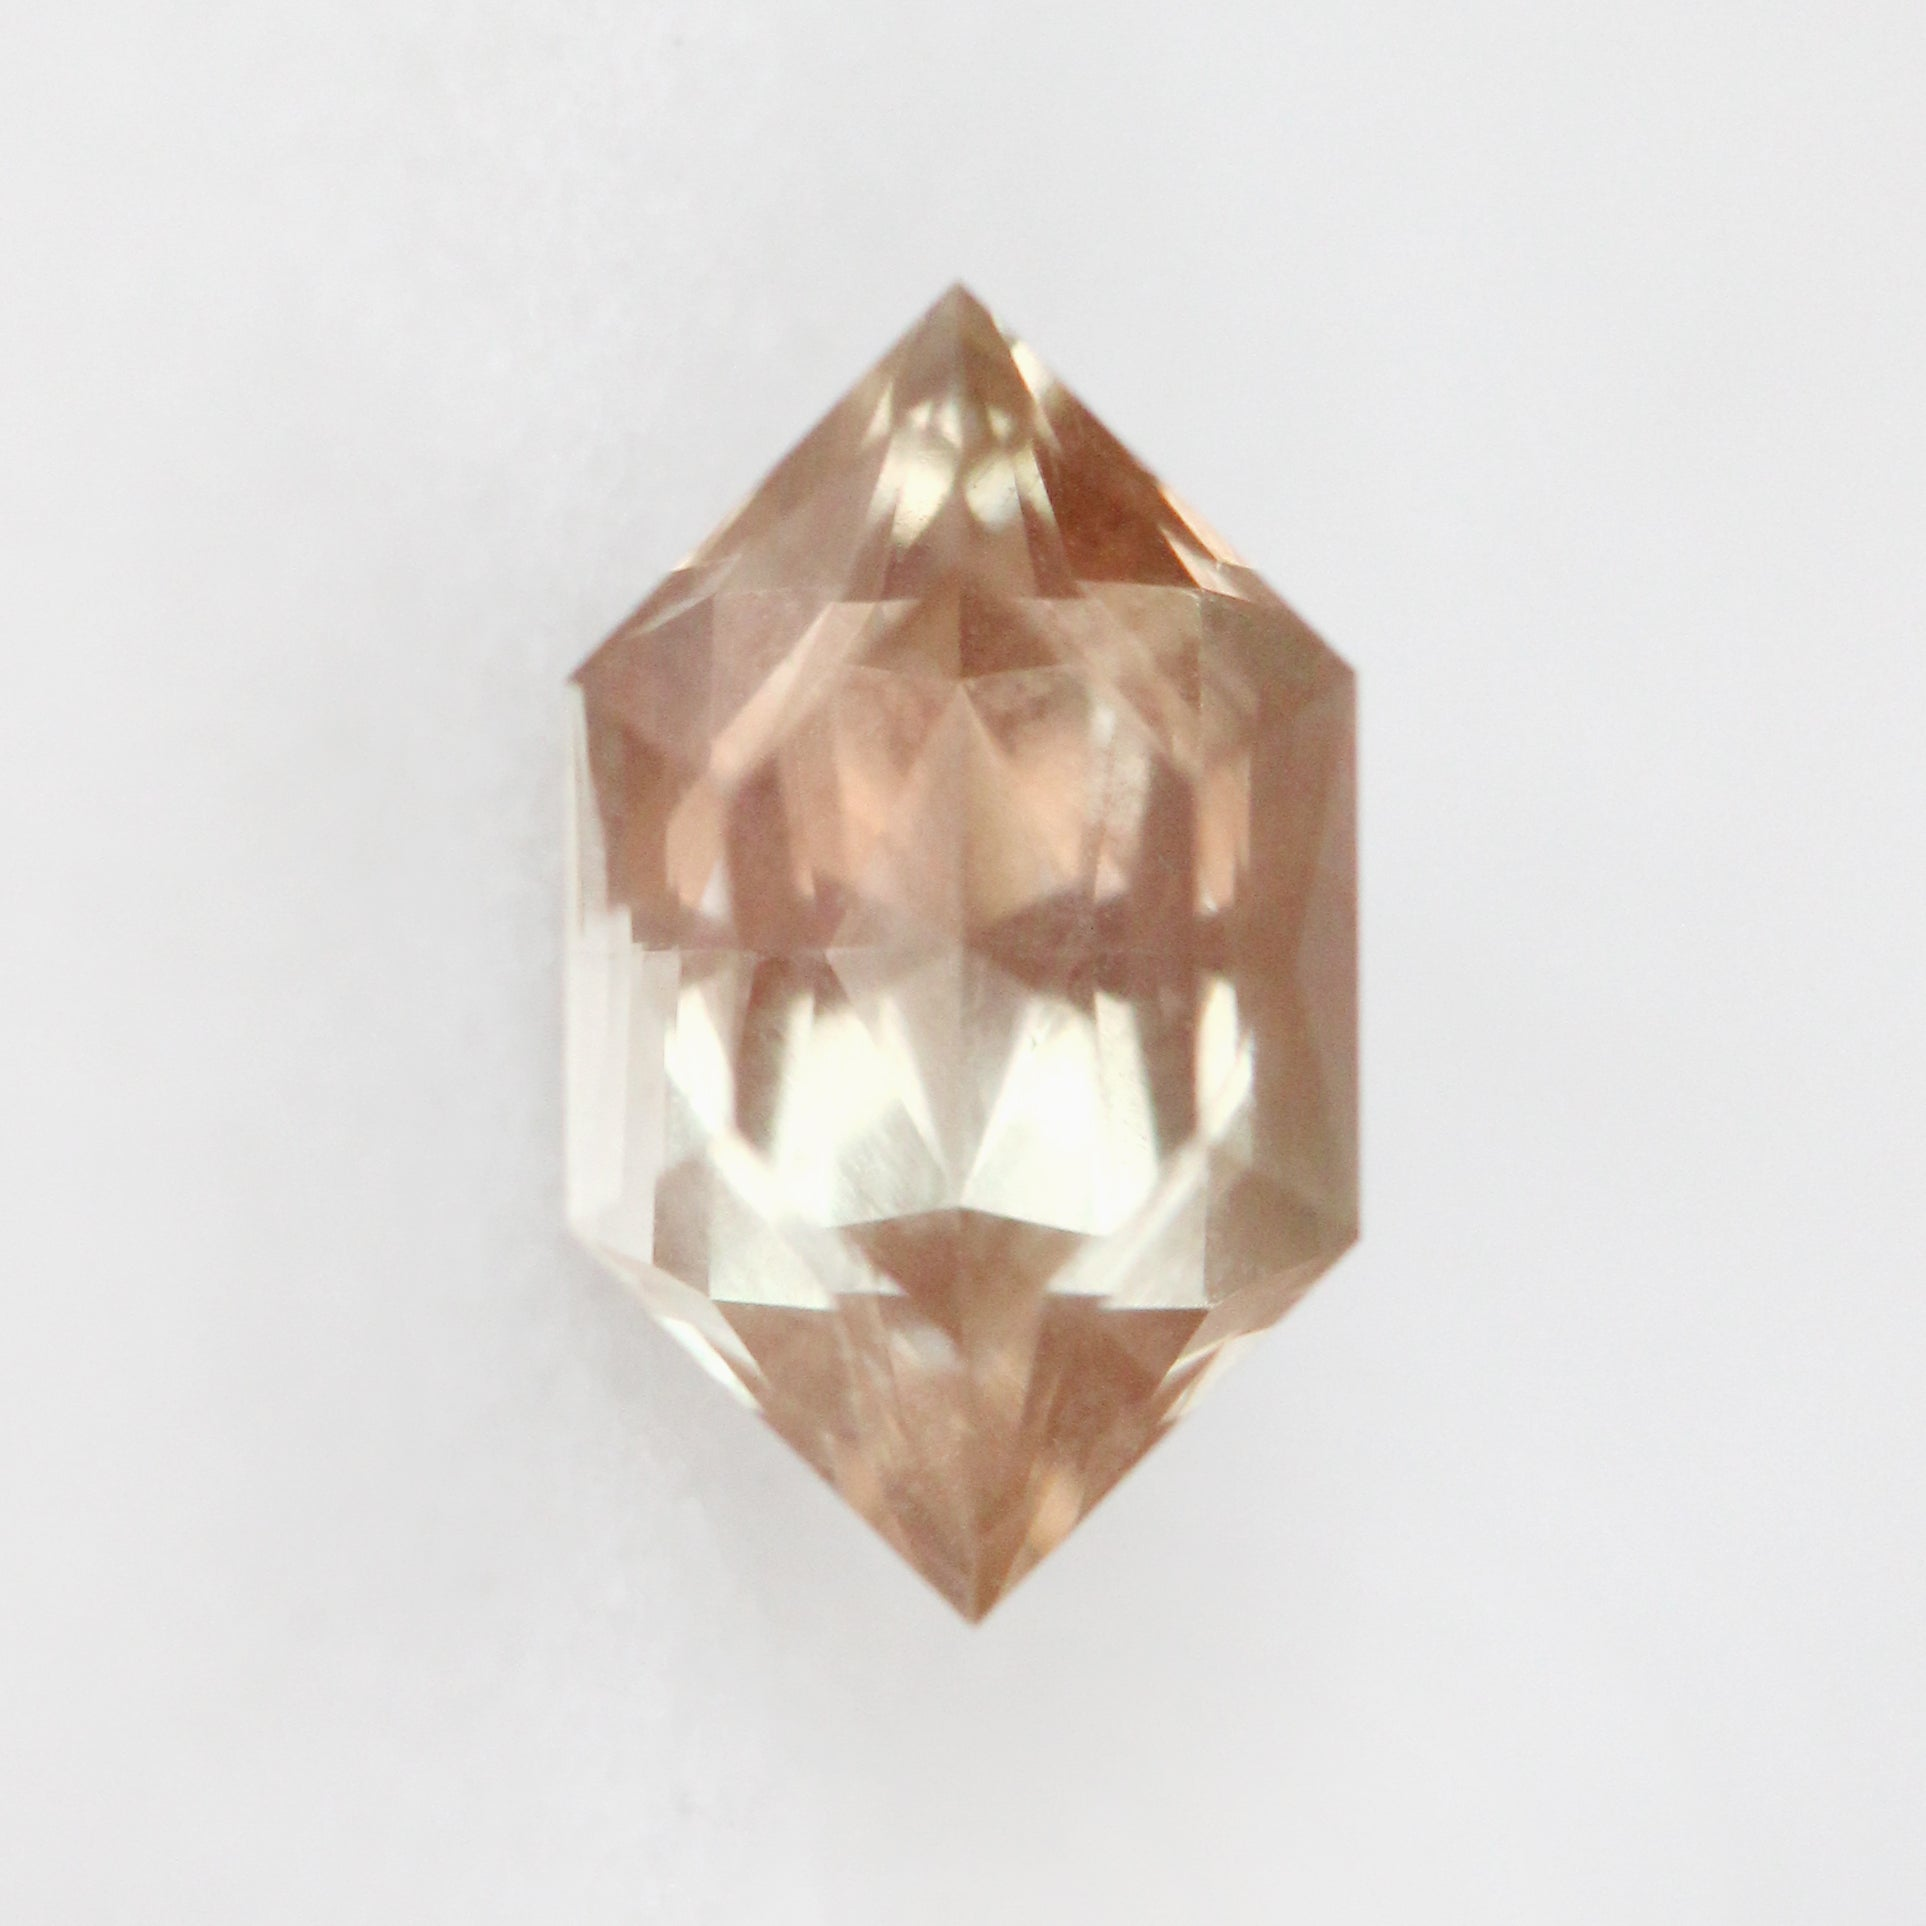 2.52ct Oregon Sunstone for Custom Work - Inventory Code SUN252 - Celestial Diamonds ® by Midwinter Co.